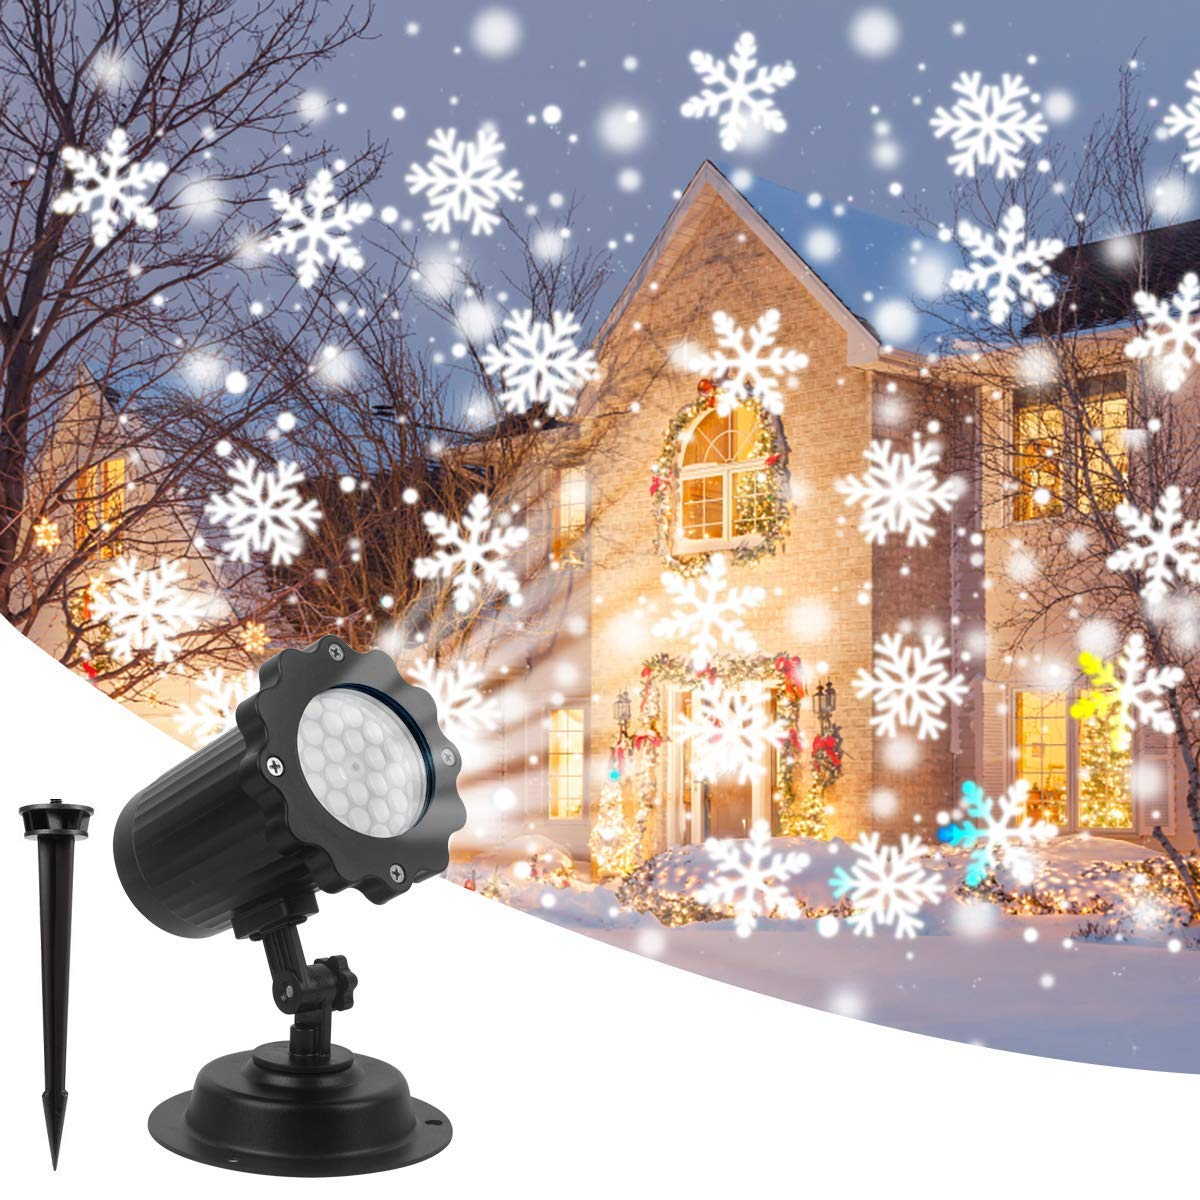 Christmas Projector Lights Amicool Outdoor Halloween Projector Lights Waterproof LED Rotating Night Lights Snowflake Spotlight with 16 Slides for Thanksgiving Party Garden Decoration